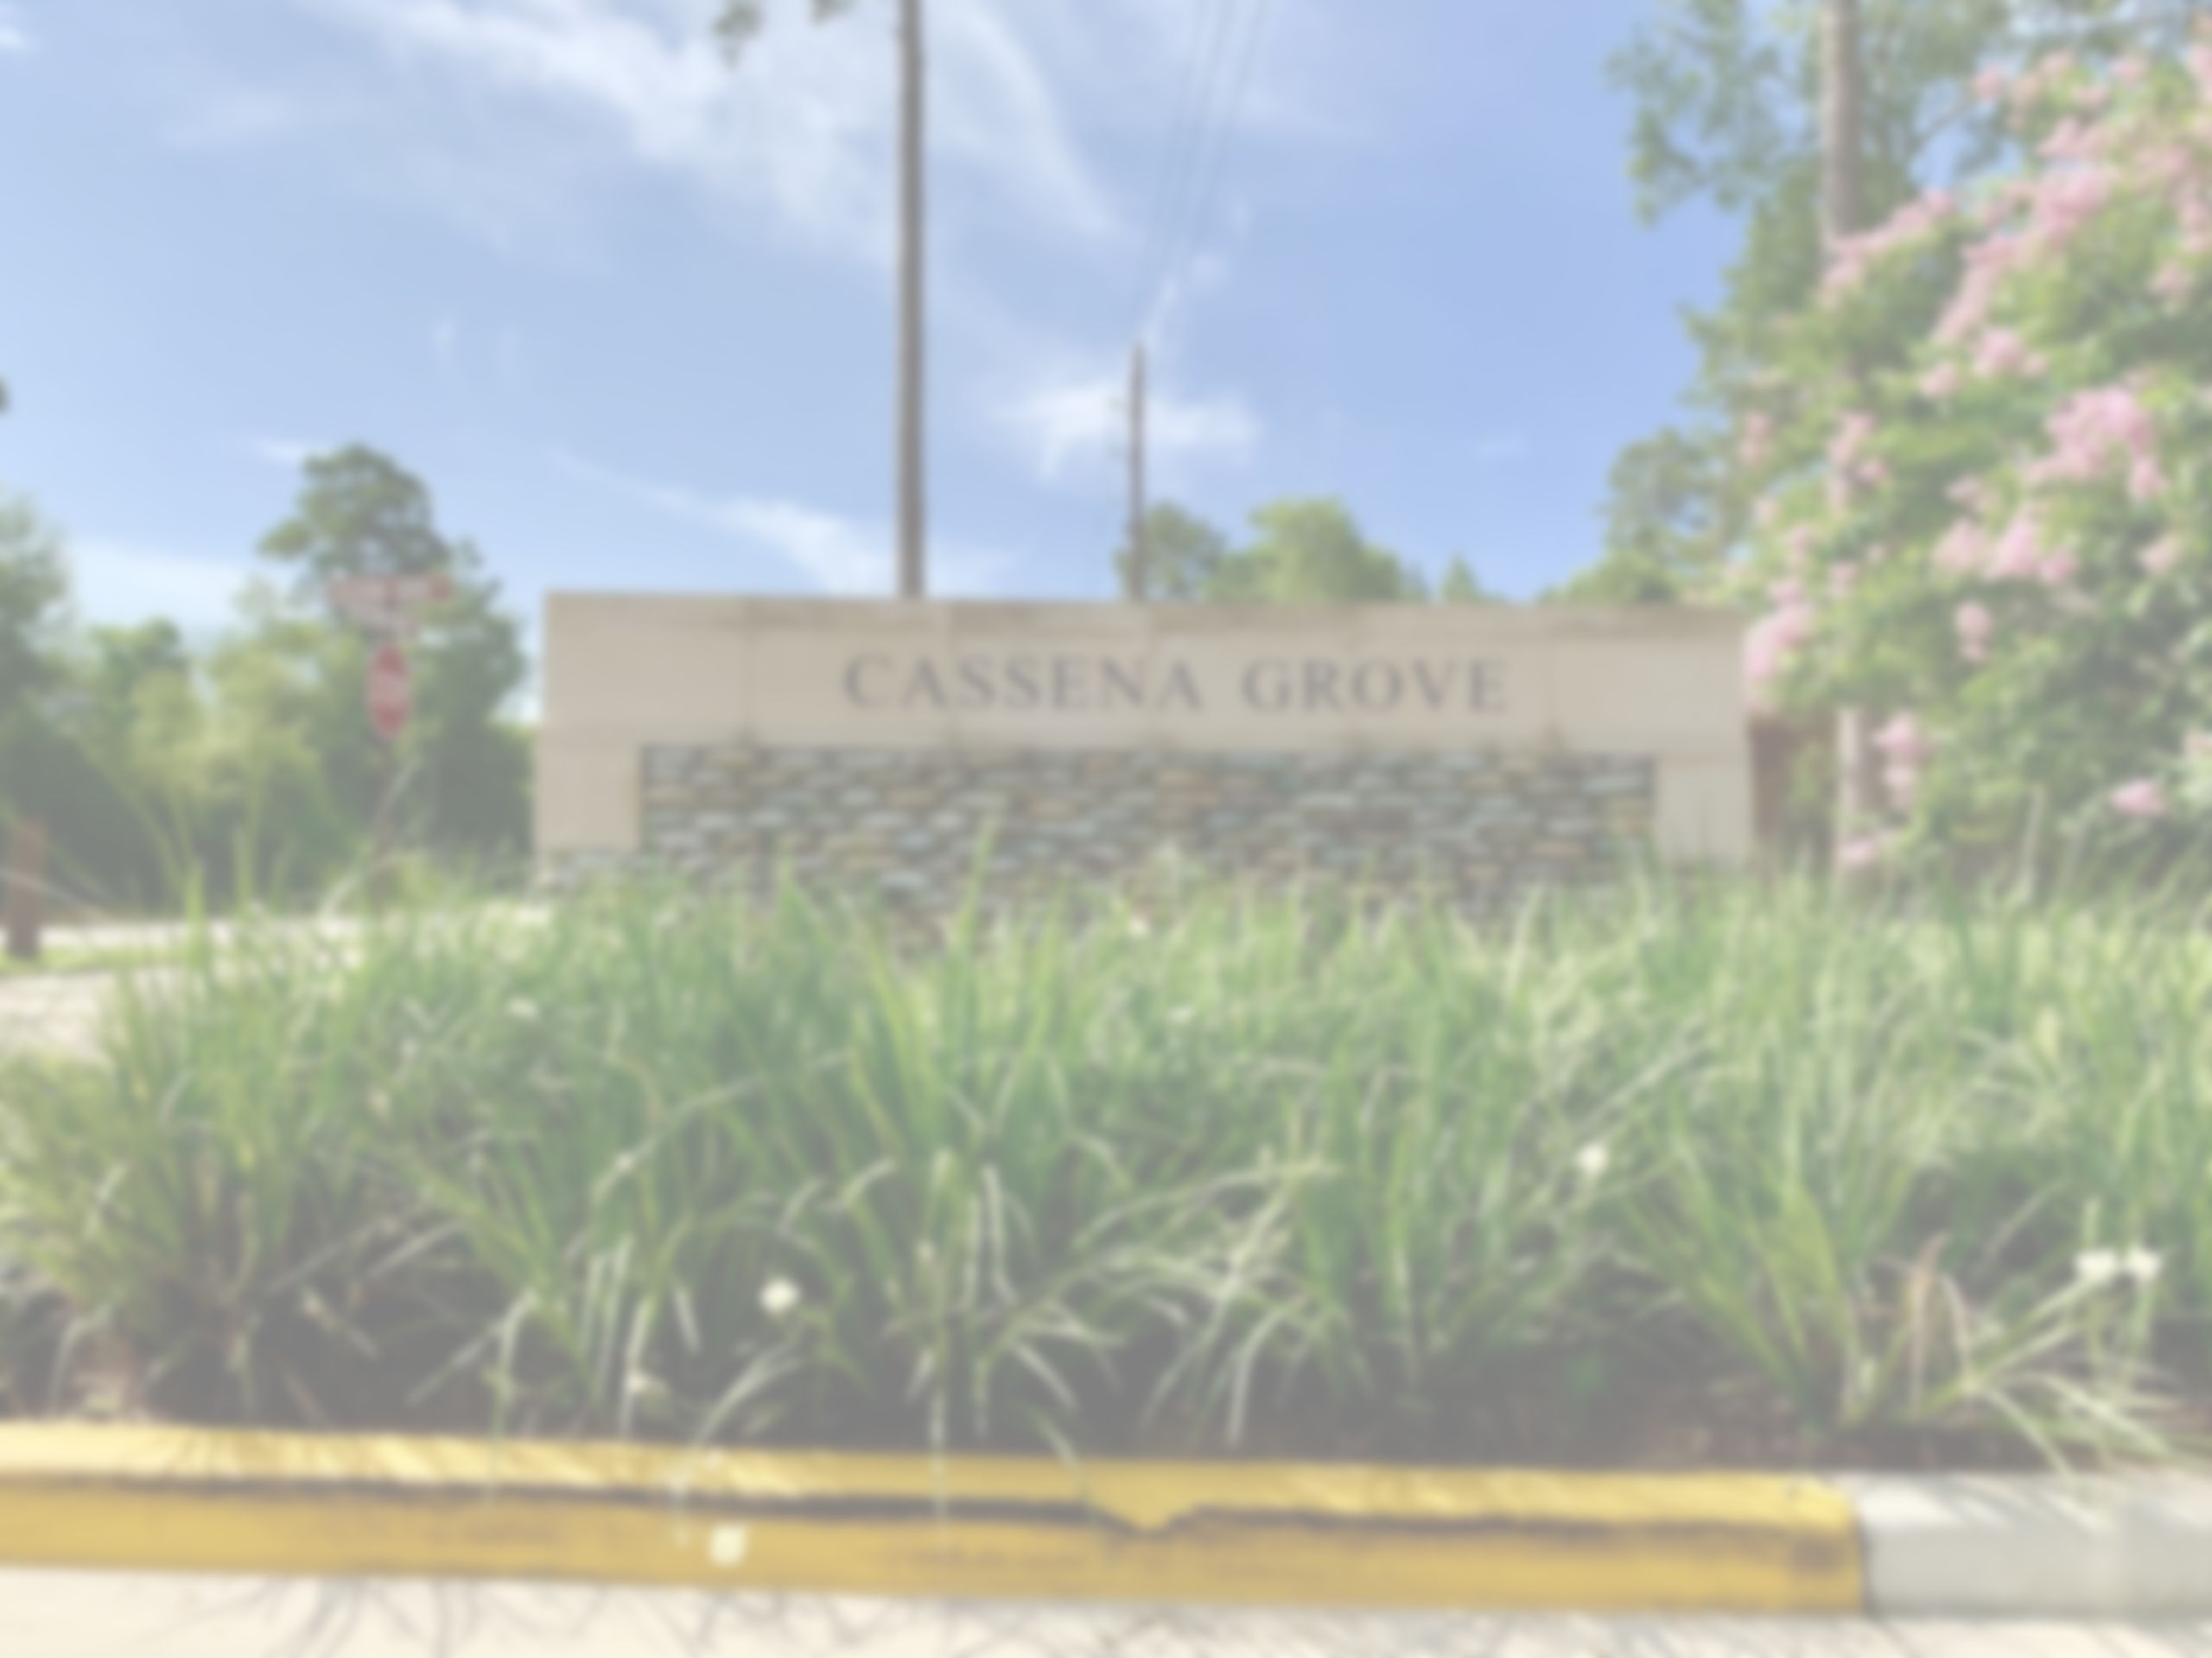 Cassena Grove at The Woodlands (Tomball)